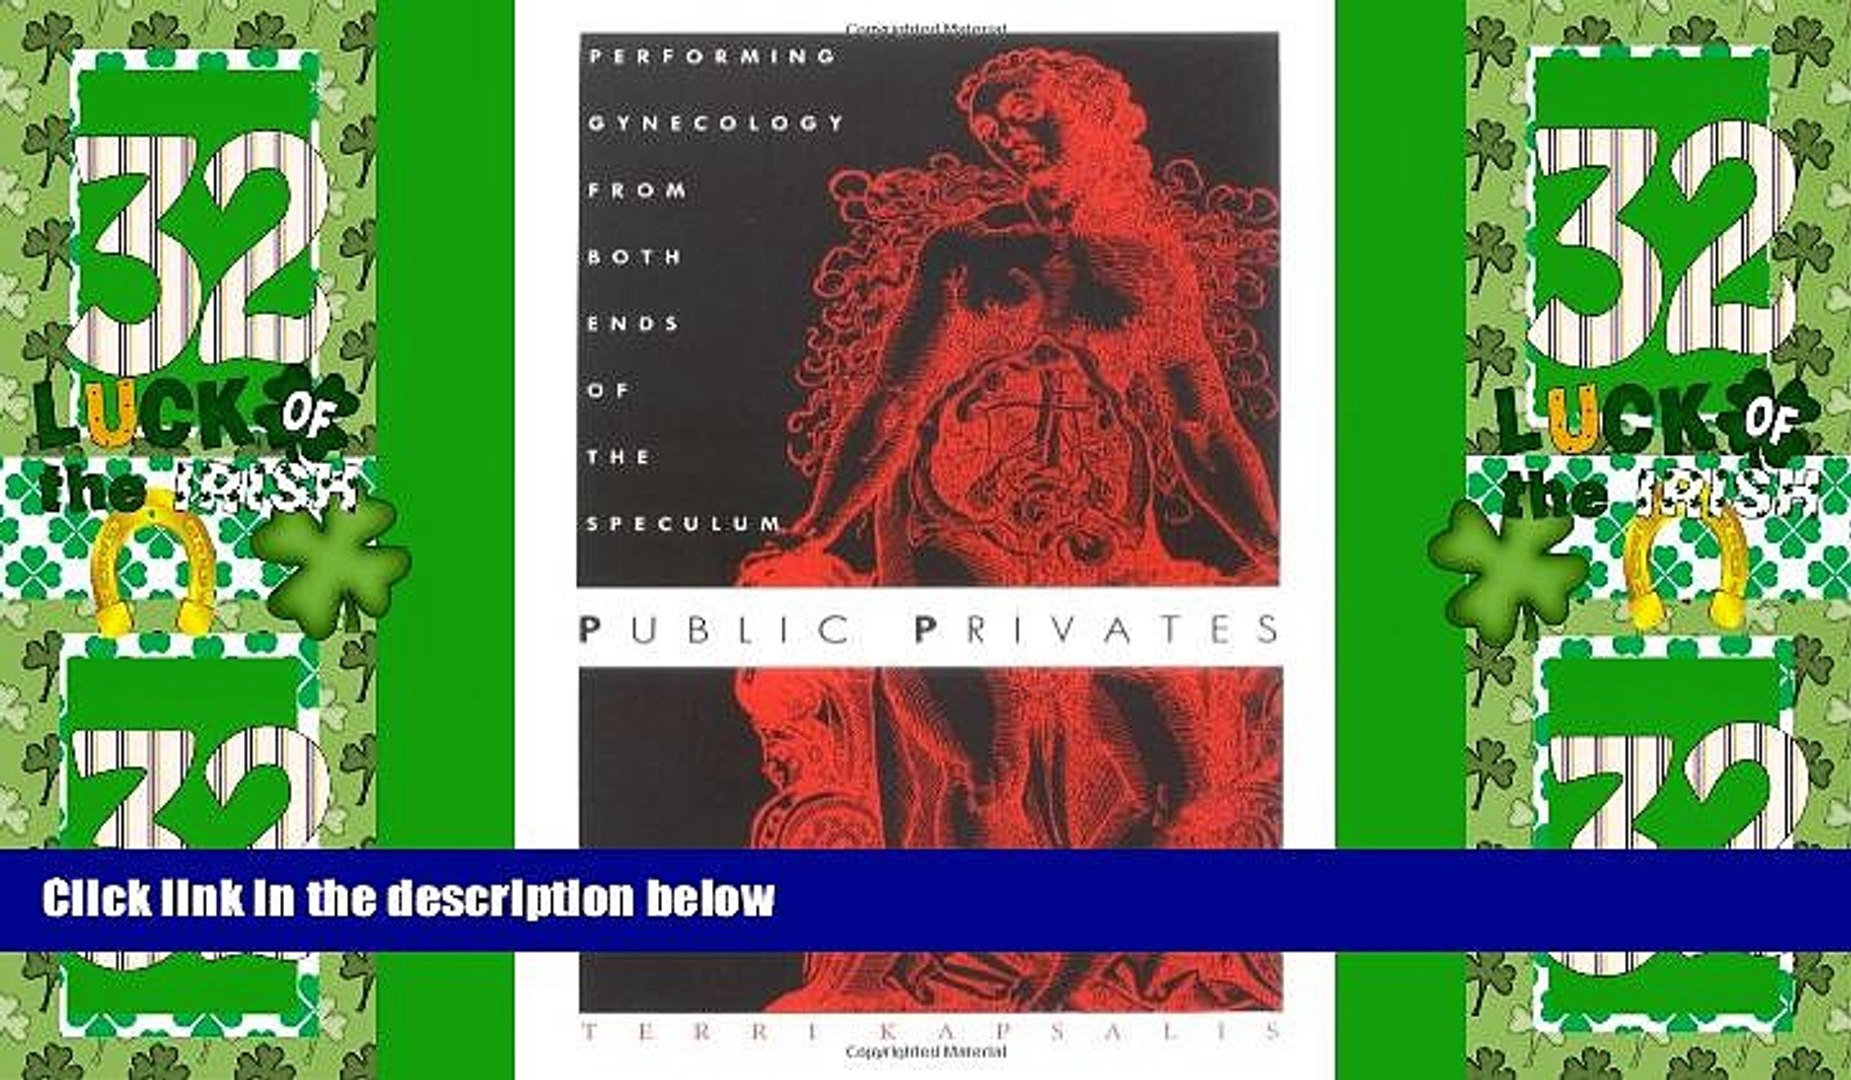 Public Privates: Performing Gynecology from Both Ends of the Speculum